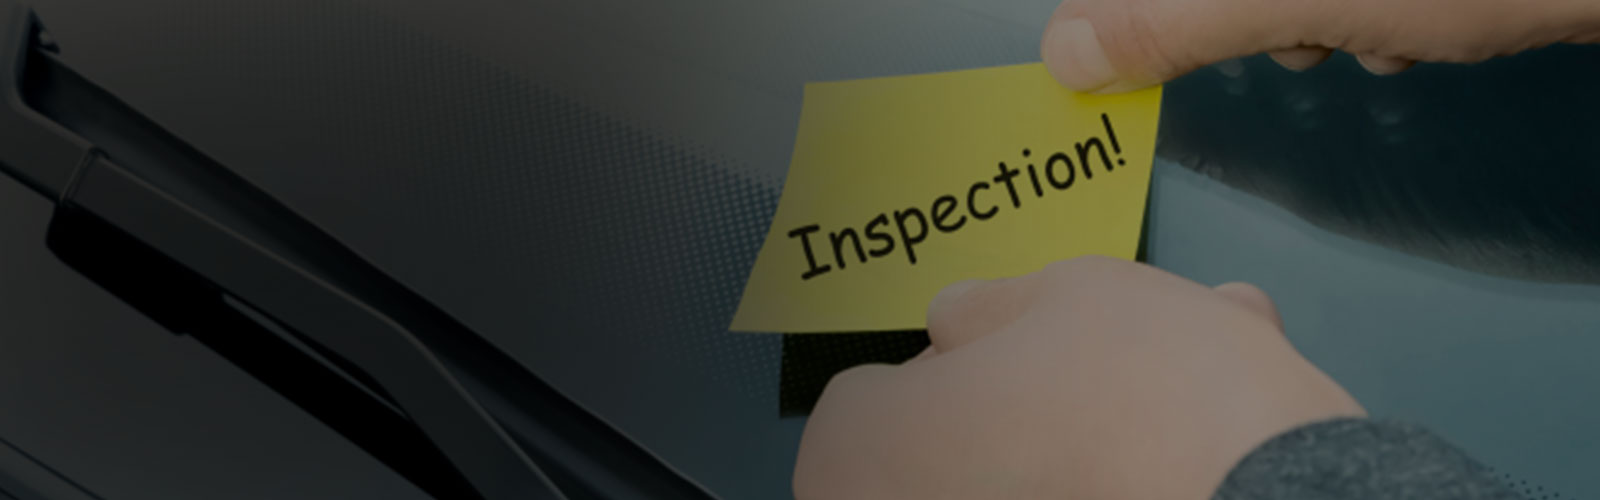 New Hampshire State Inspections